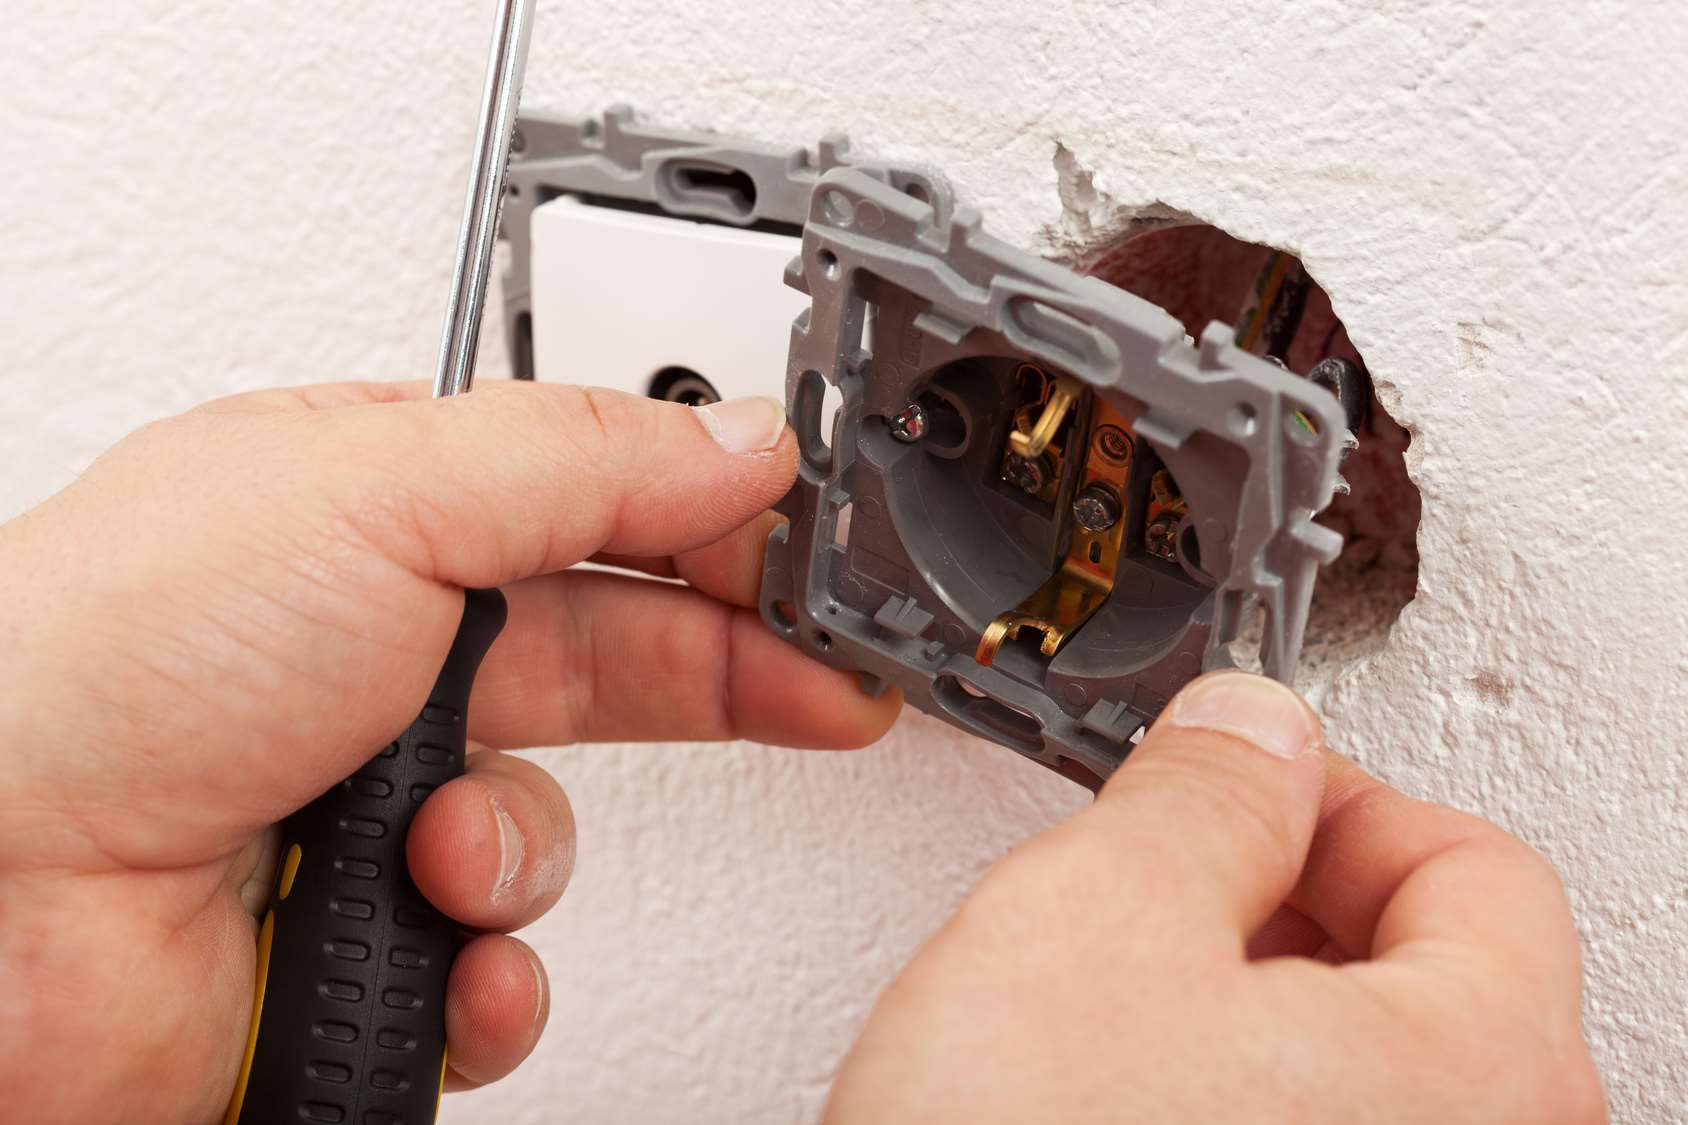 Electrician hands mounting electric wall receptacle - fitting into place